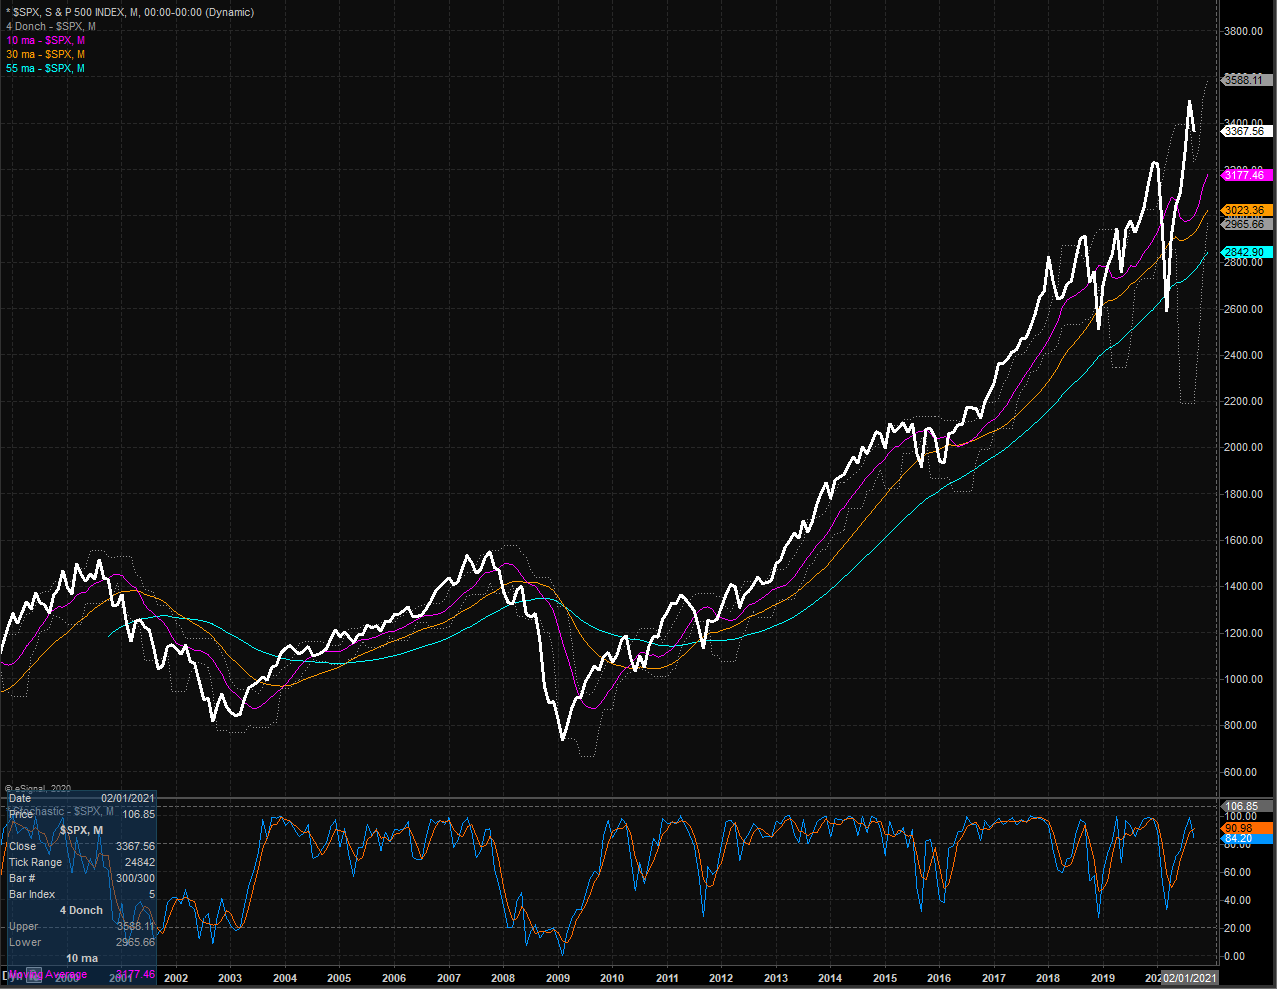 S&P Monthly Chart.